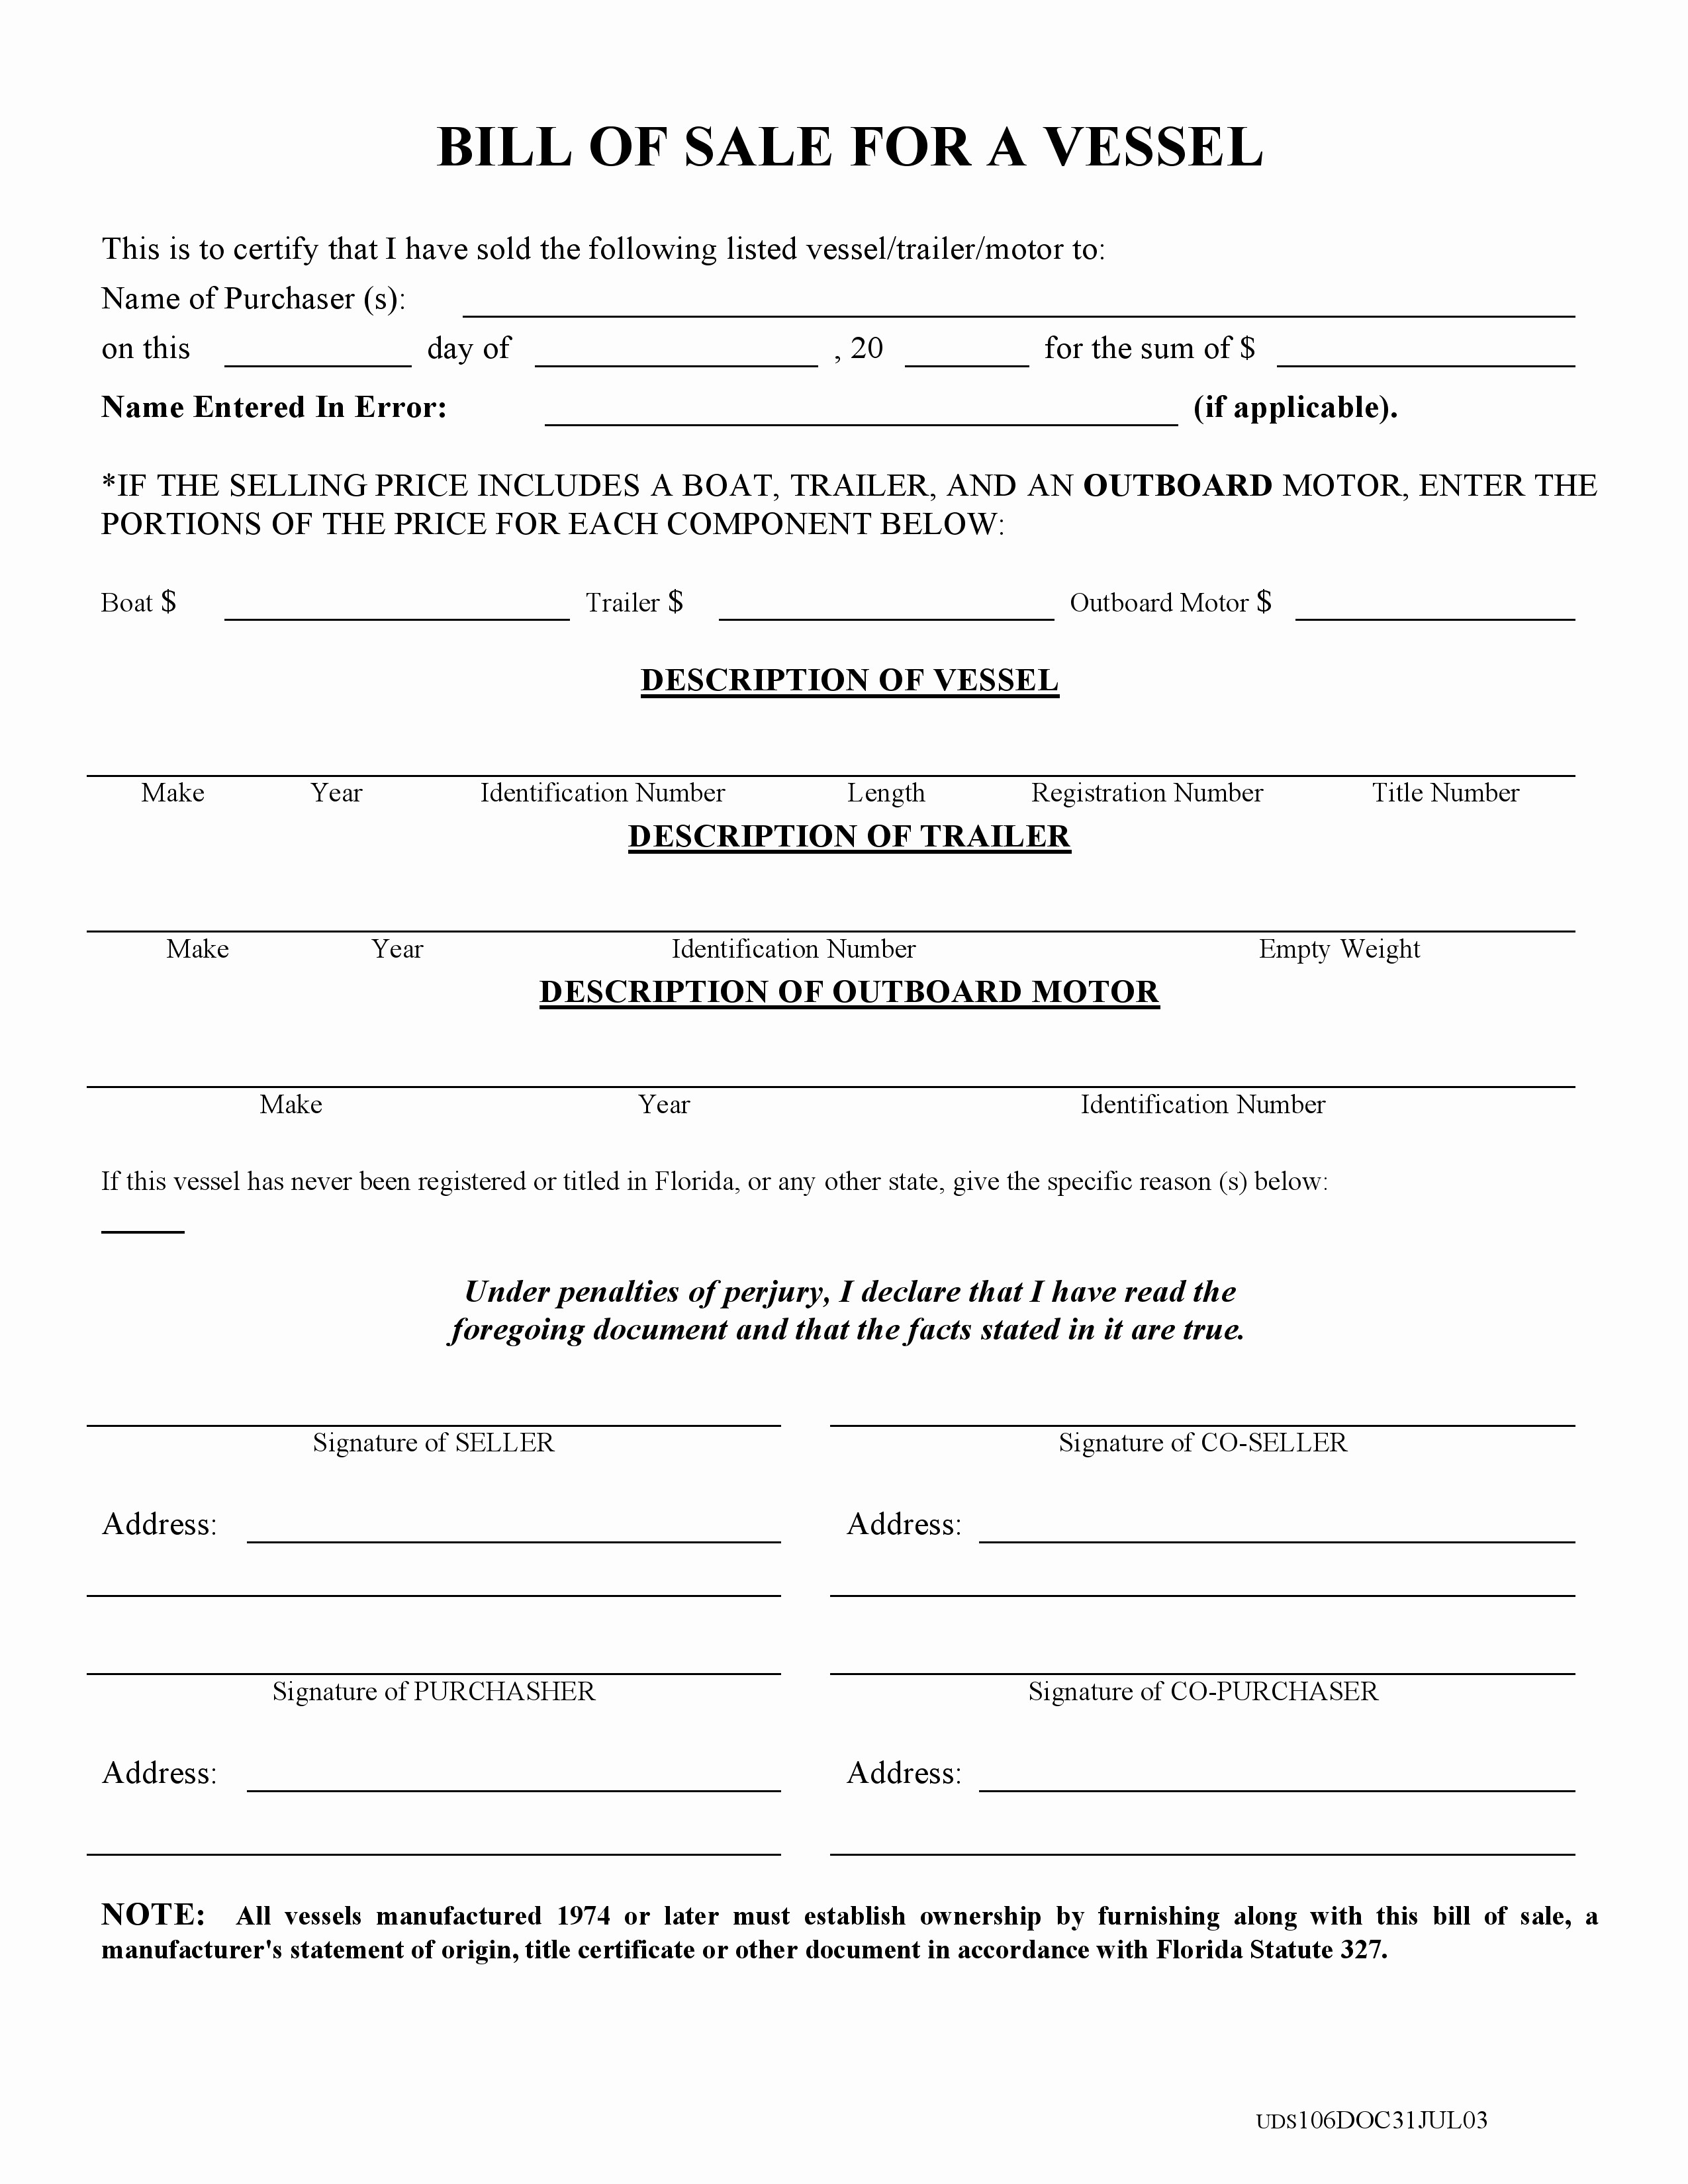 Florida Automotive Bill Of Sale Lovely Free Florida Boat Bill Of Sale form Pdf